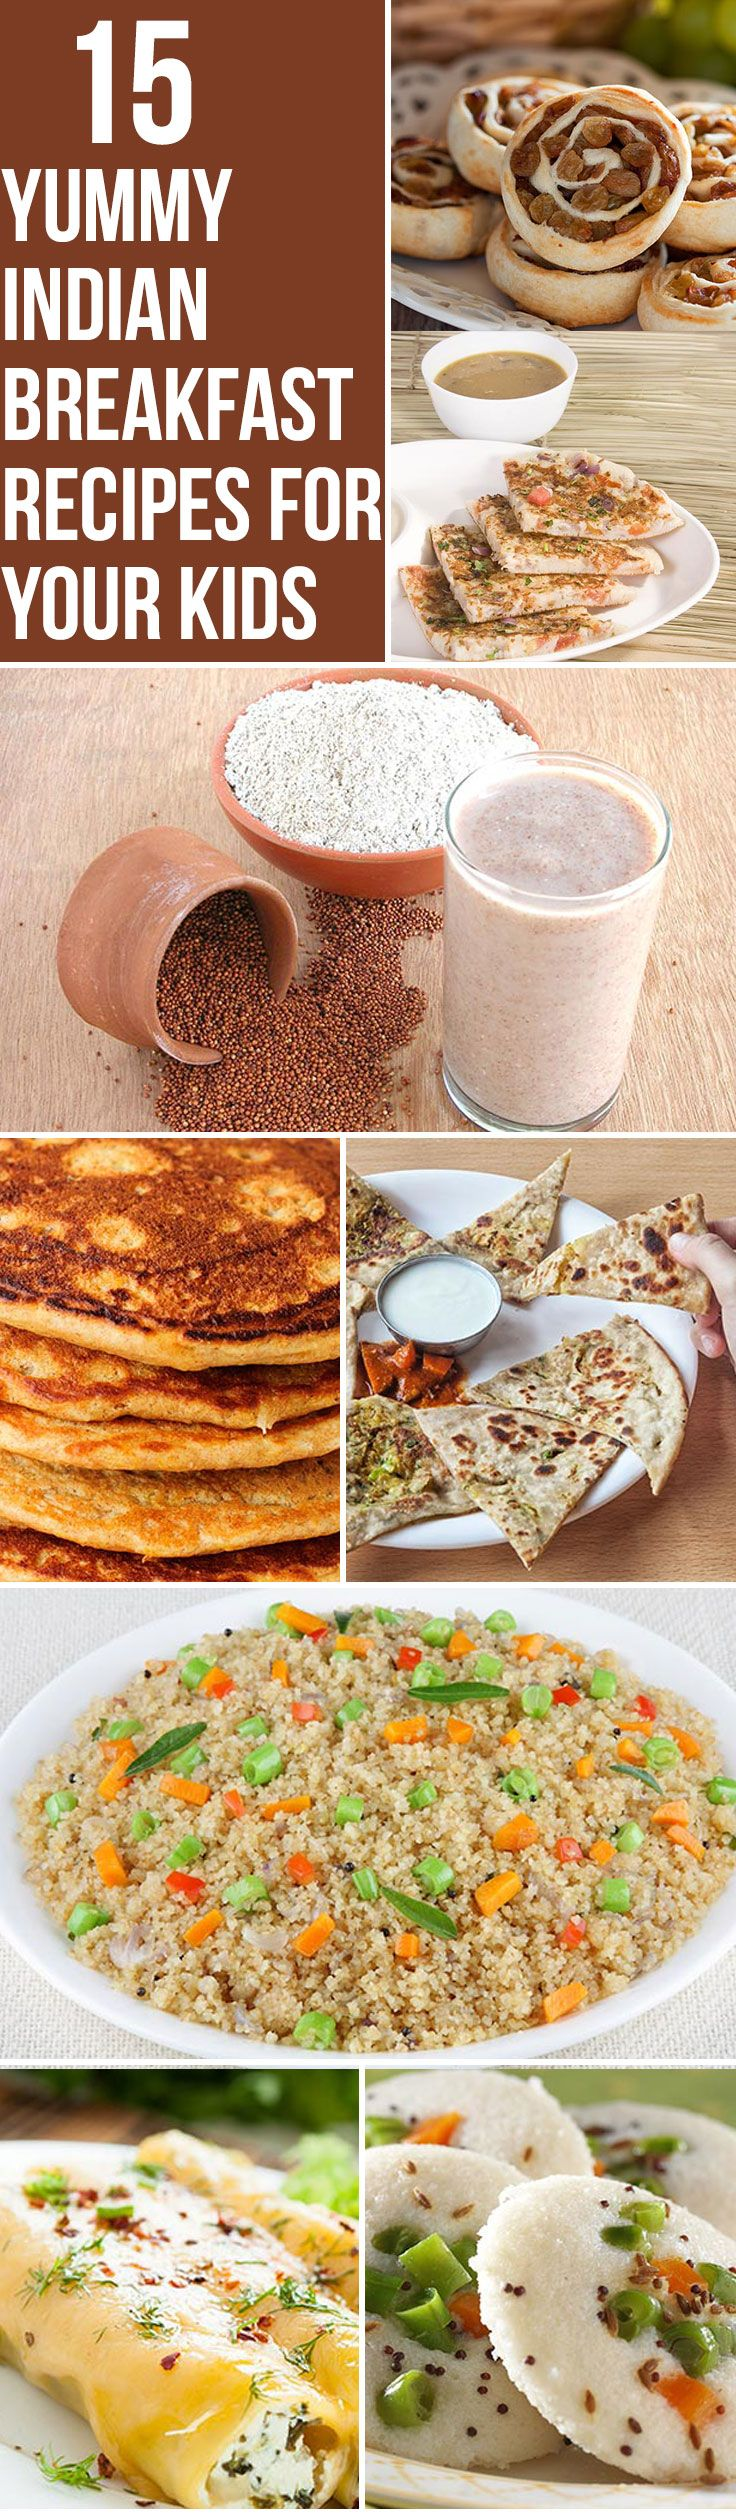 Top 15 yummy indian breakfast recipes for your kids indian top 15 yummy indian breakfast recipes for your kids forumfinder Choice Image